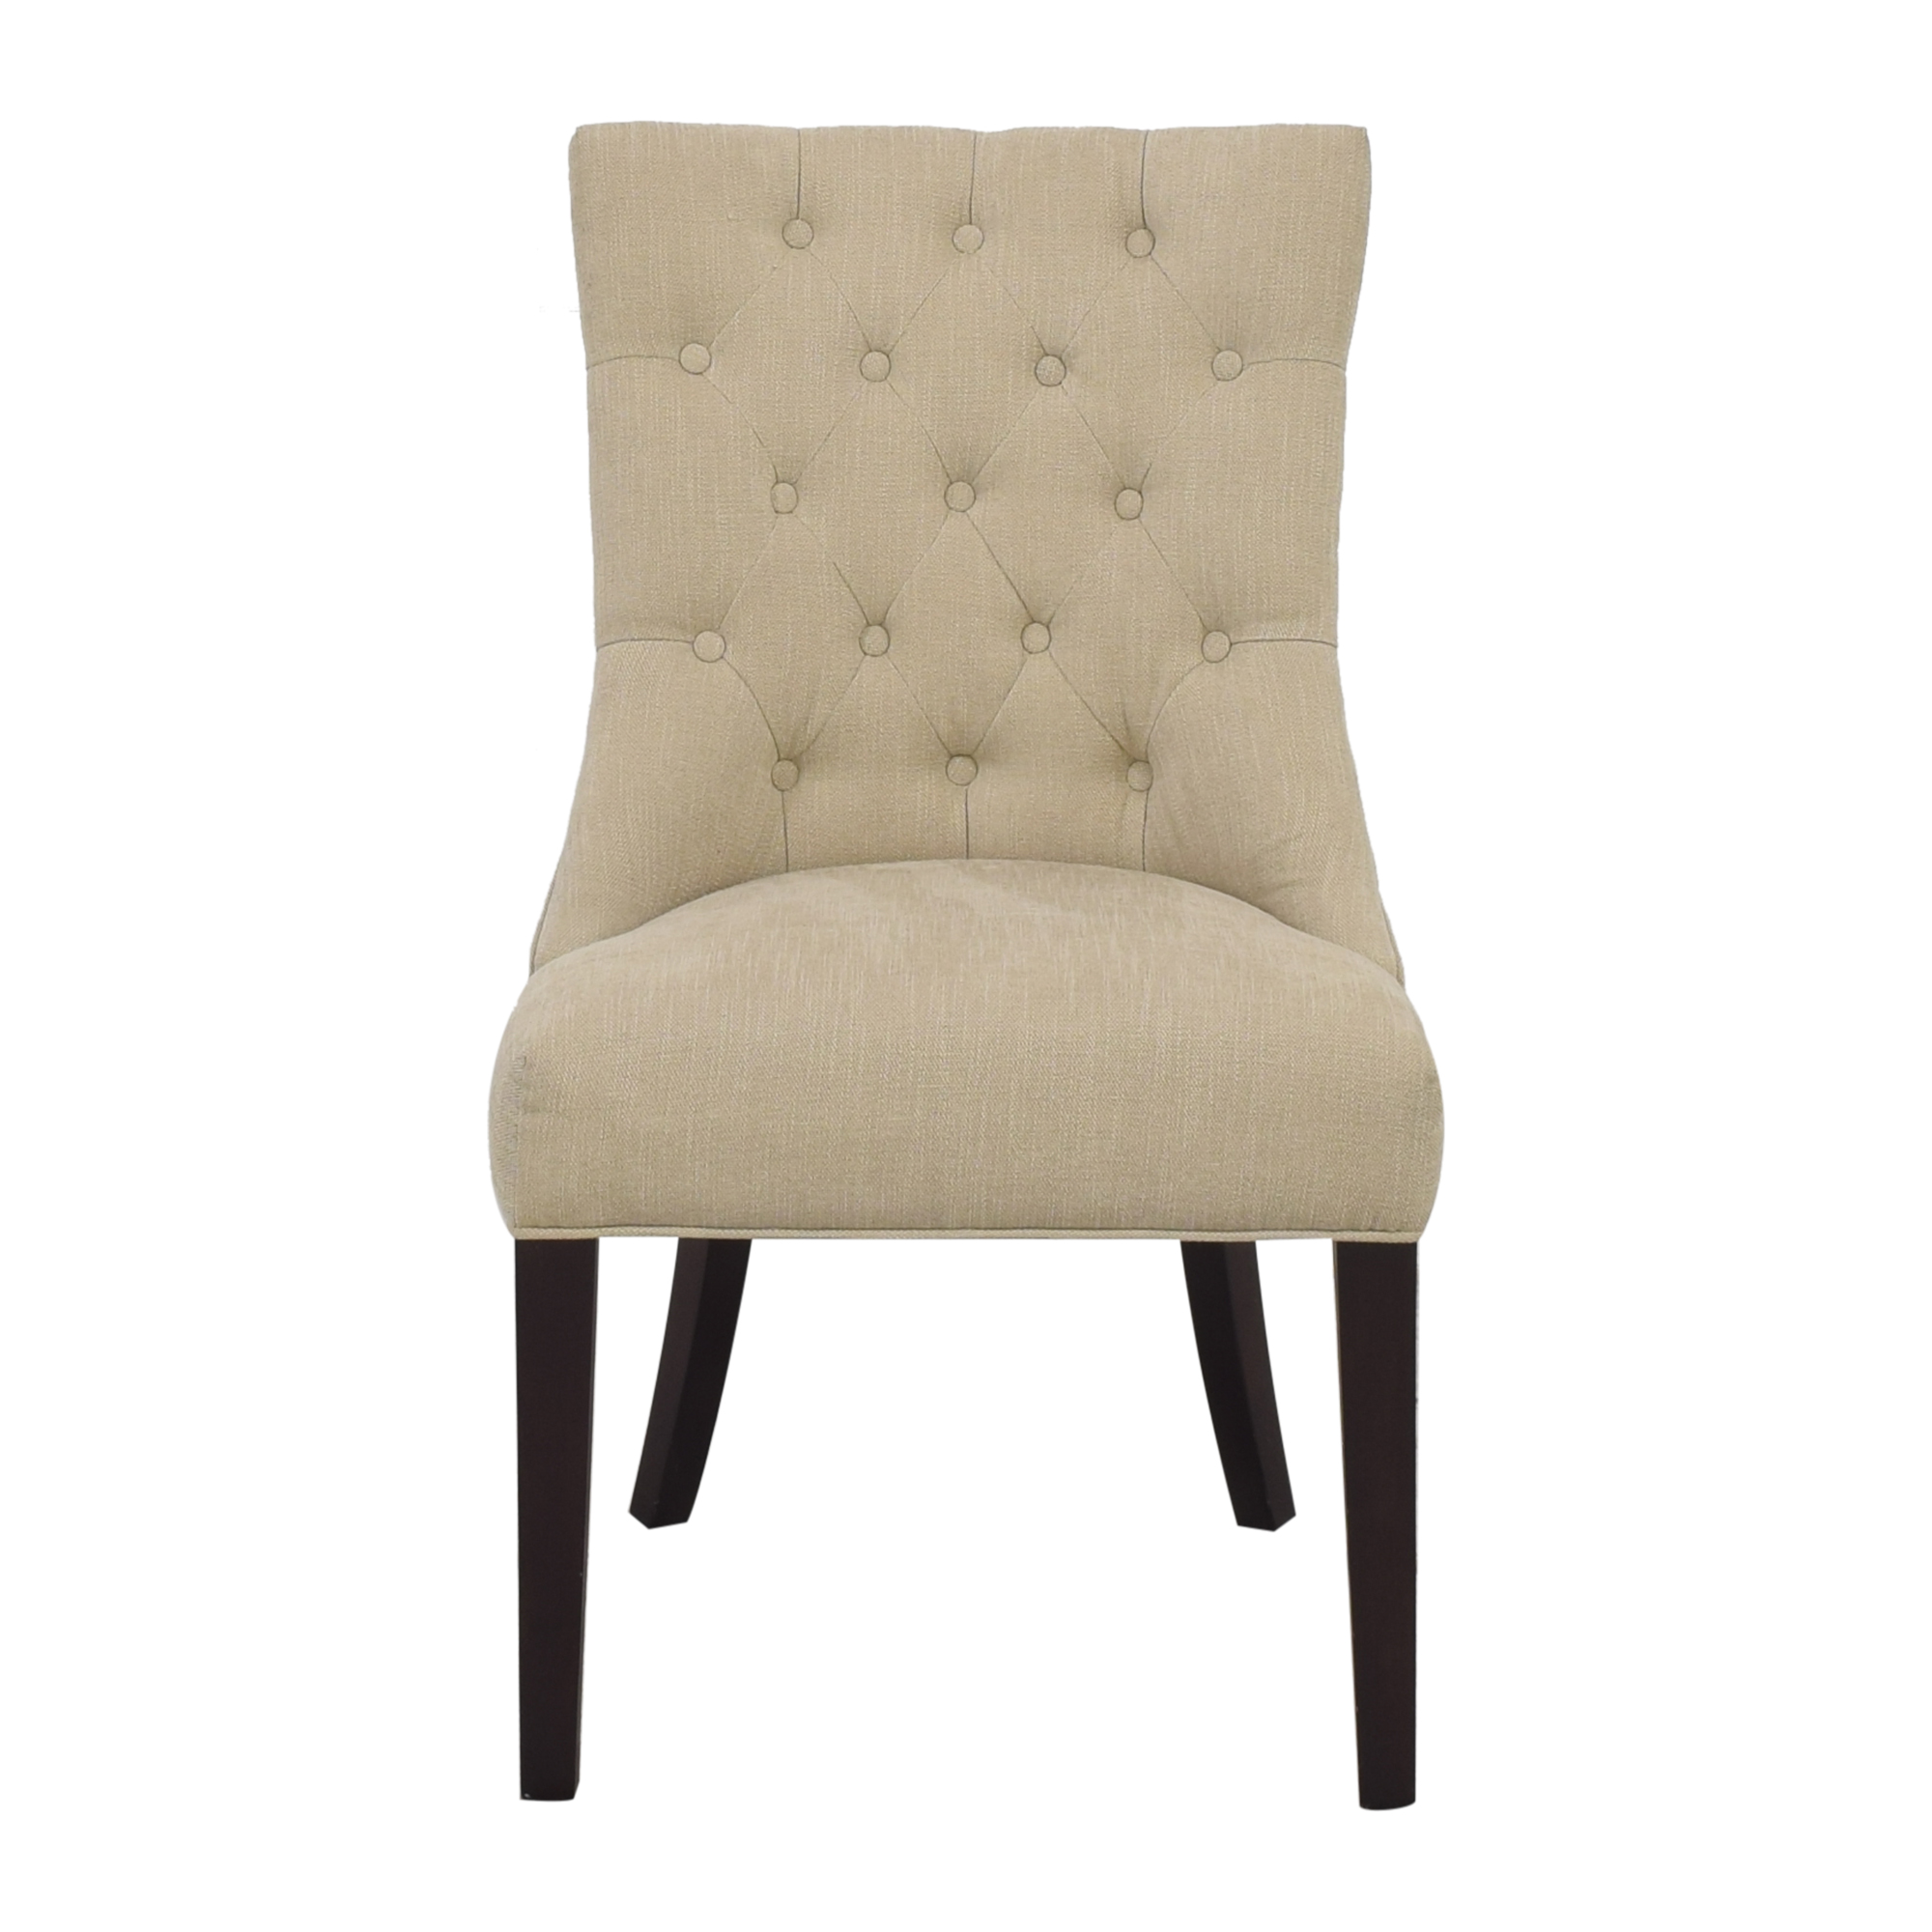 Pottery Barn Pottery Barn Hayes Tufted Dining Chair